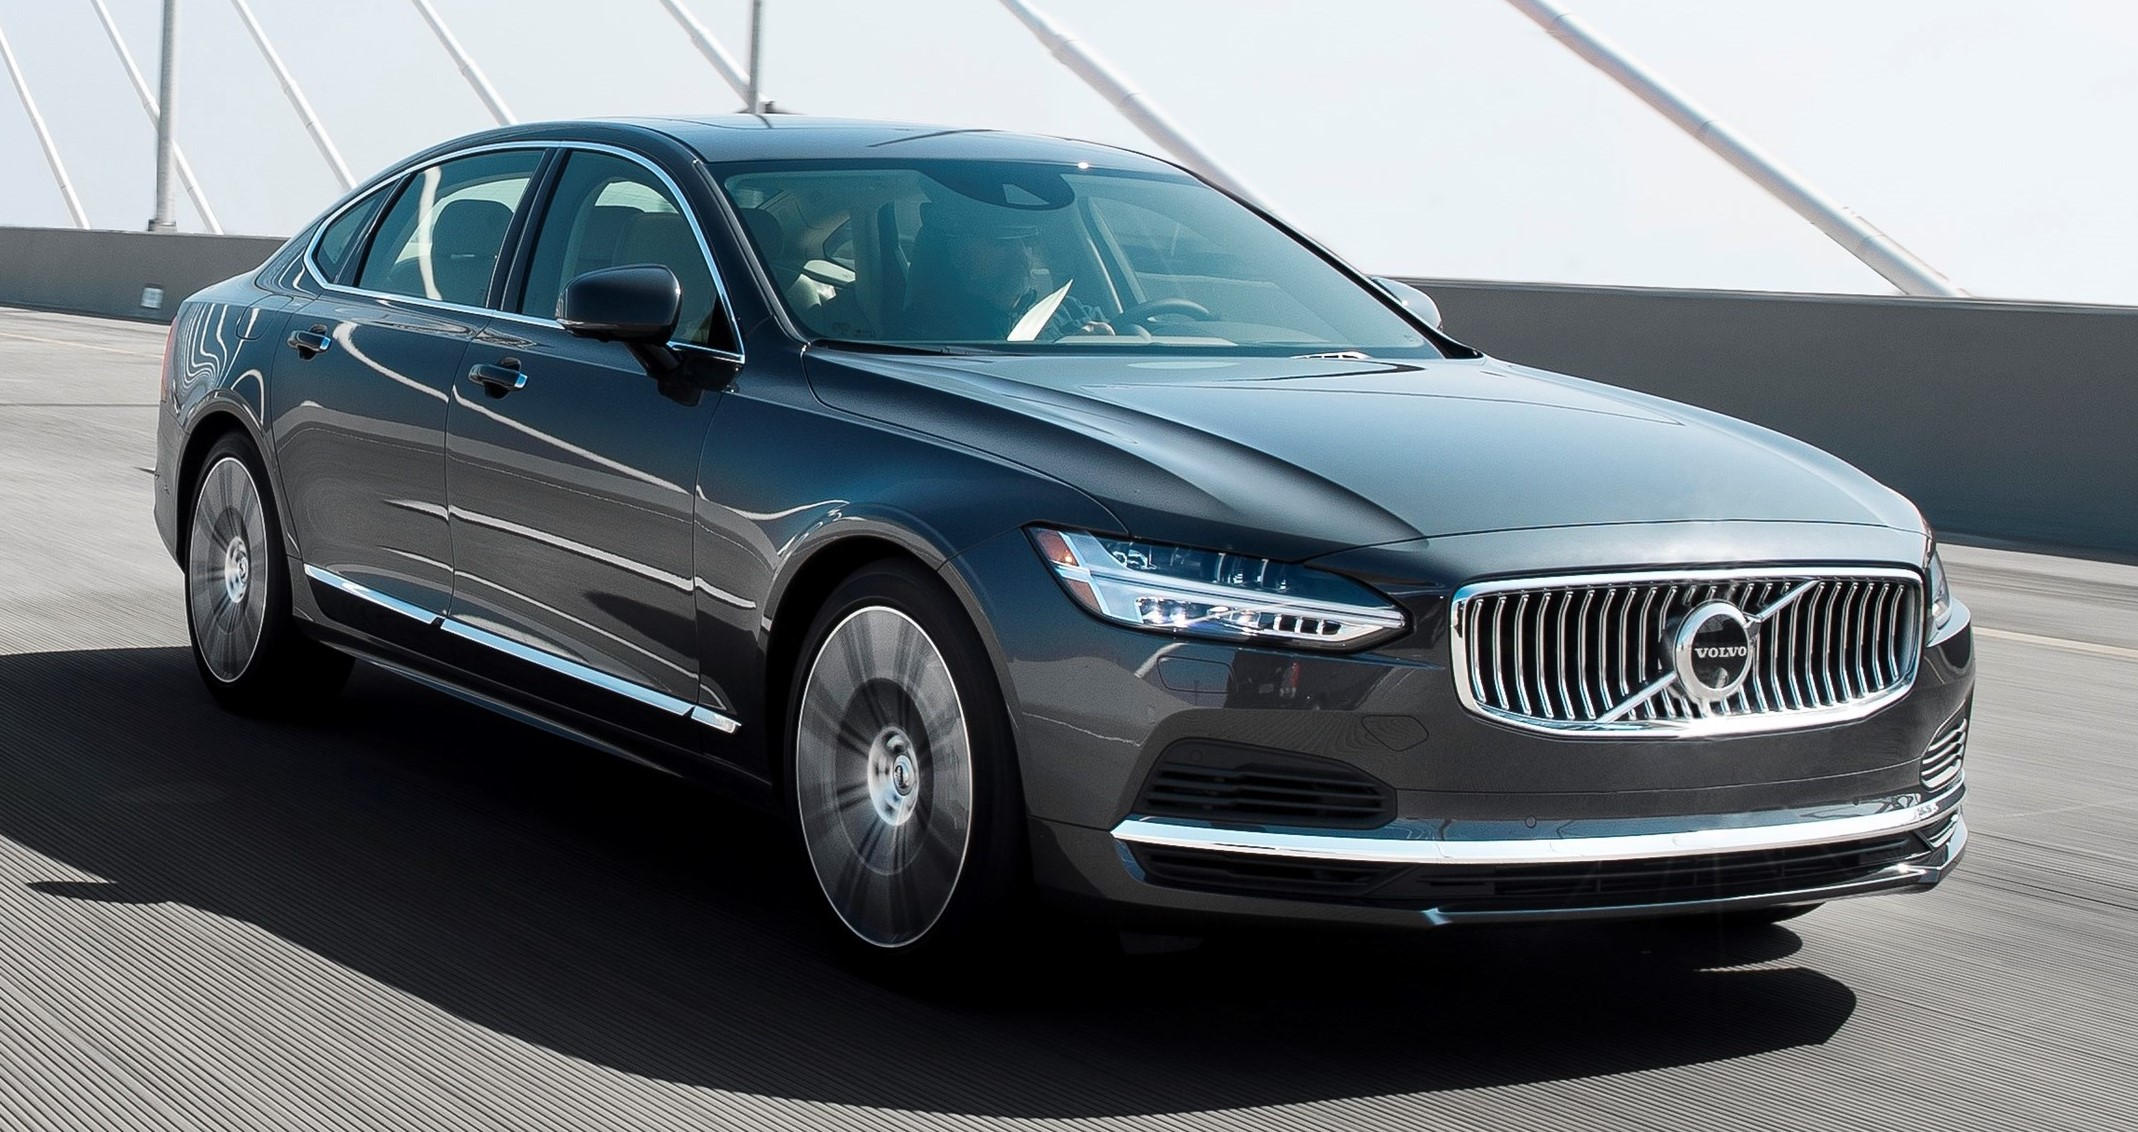 2020 Volvo S90 T8 plug-in hybrid won in the AAA Car Guide's large-car group.